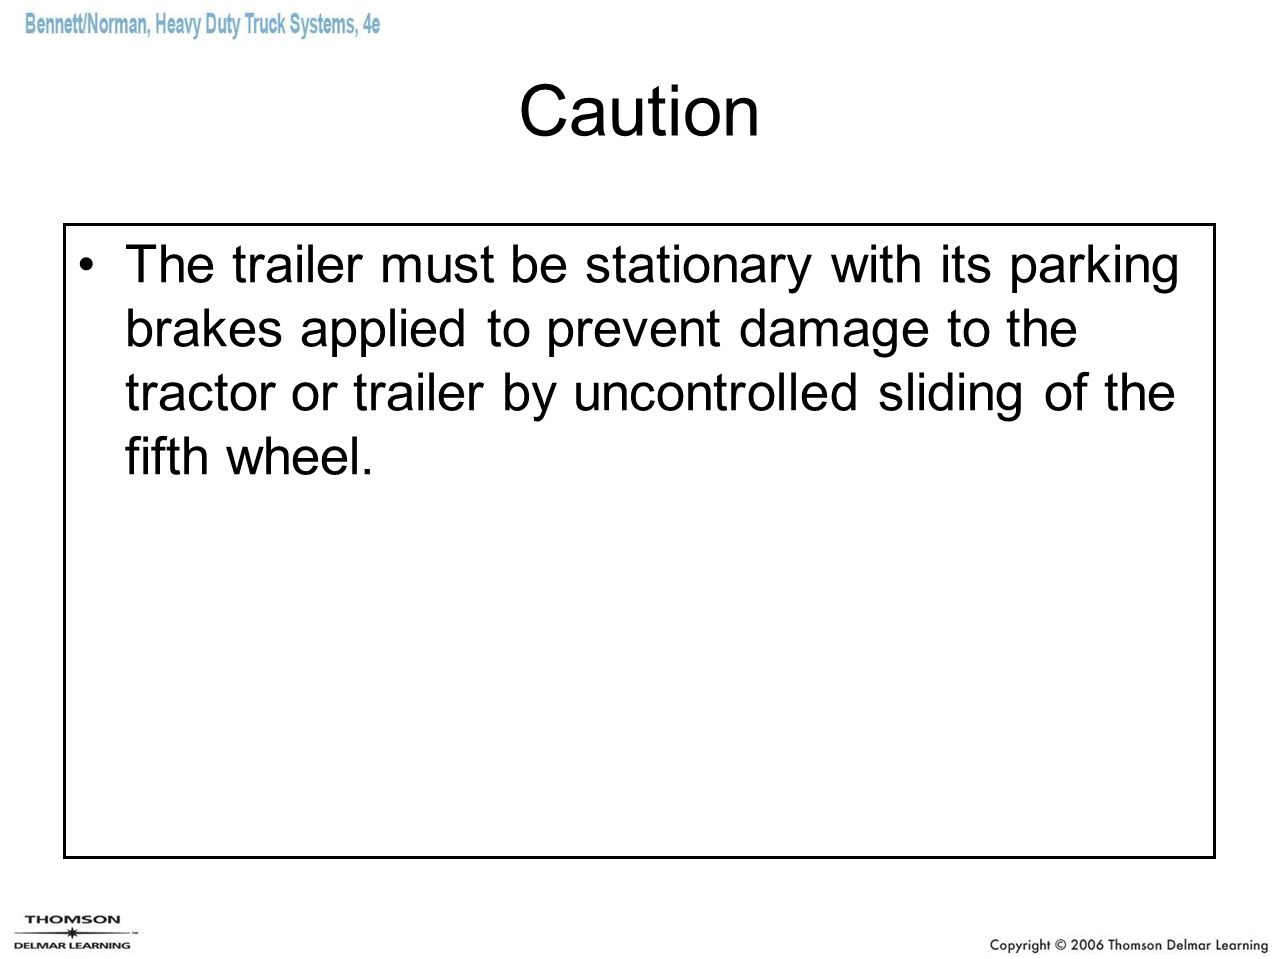 Caution The trailer must be stationary with its parking brakes applied to prevent damage to the tractor or trailer by uncontrolled sliding of the fift